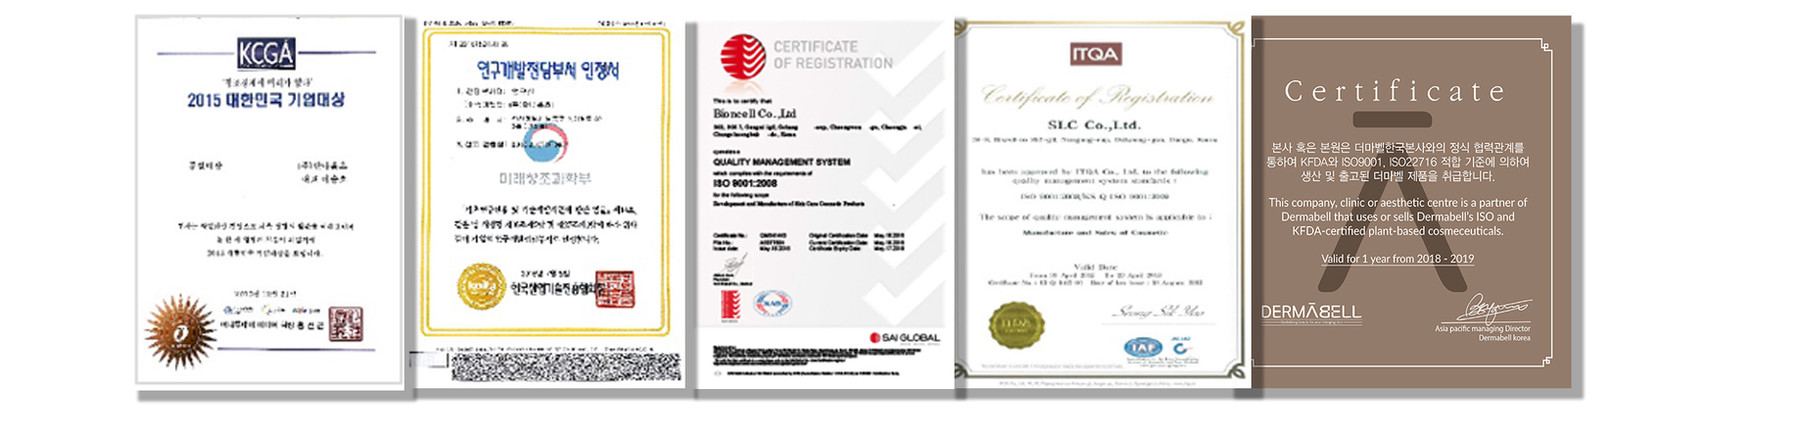 BeautySquare Certificates copy2.jpg